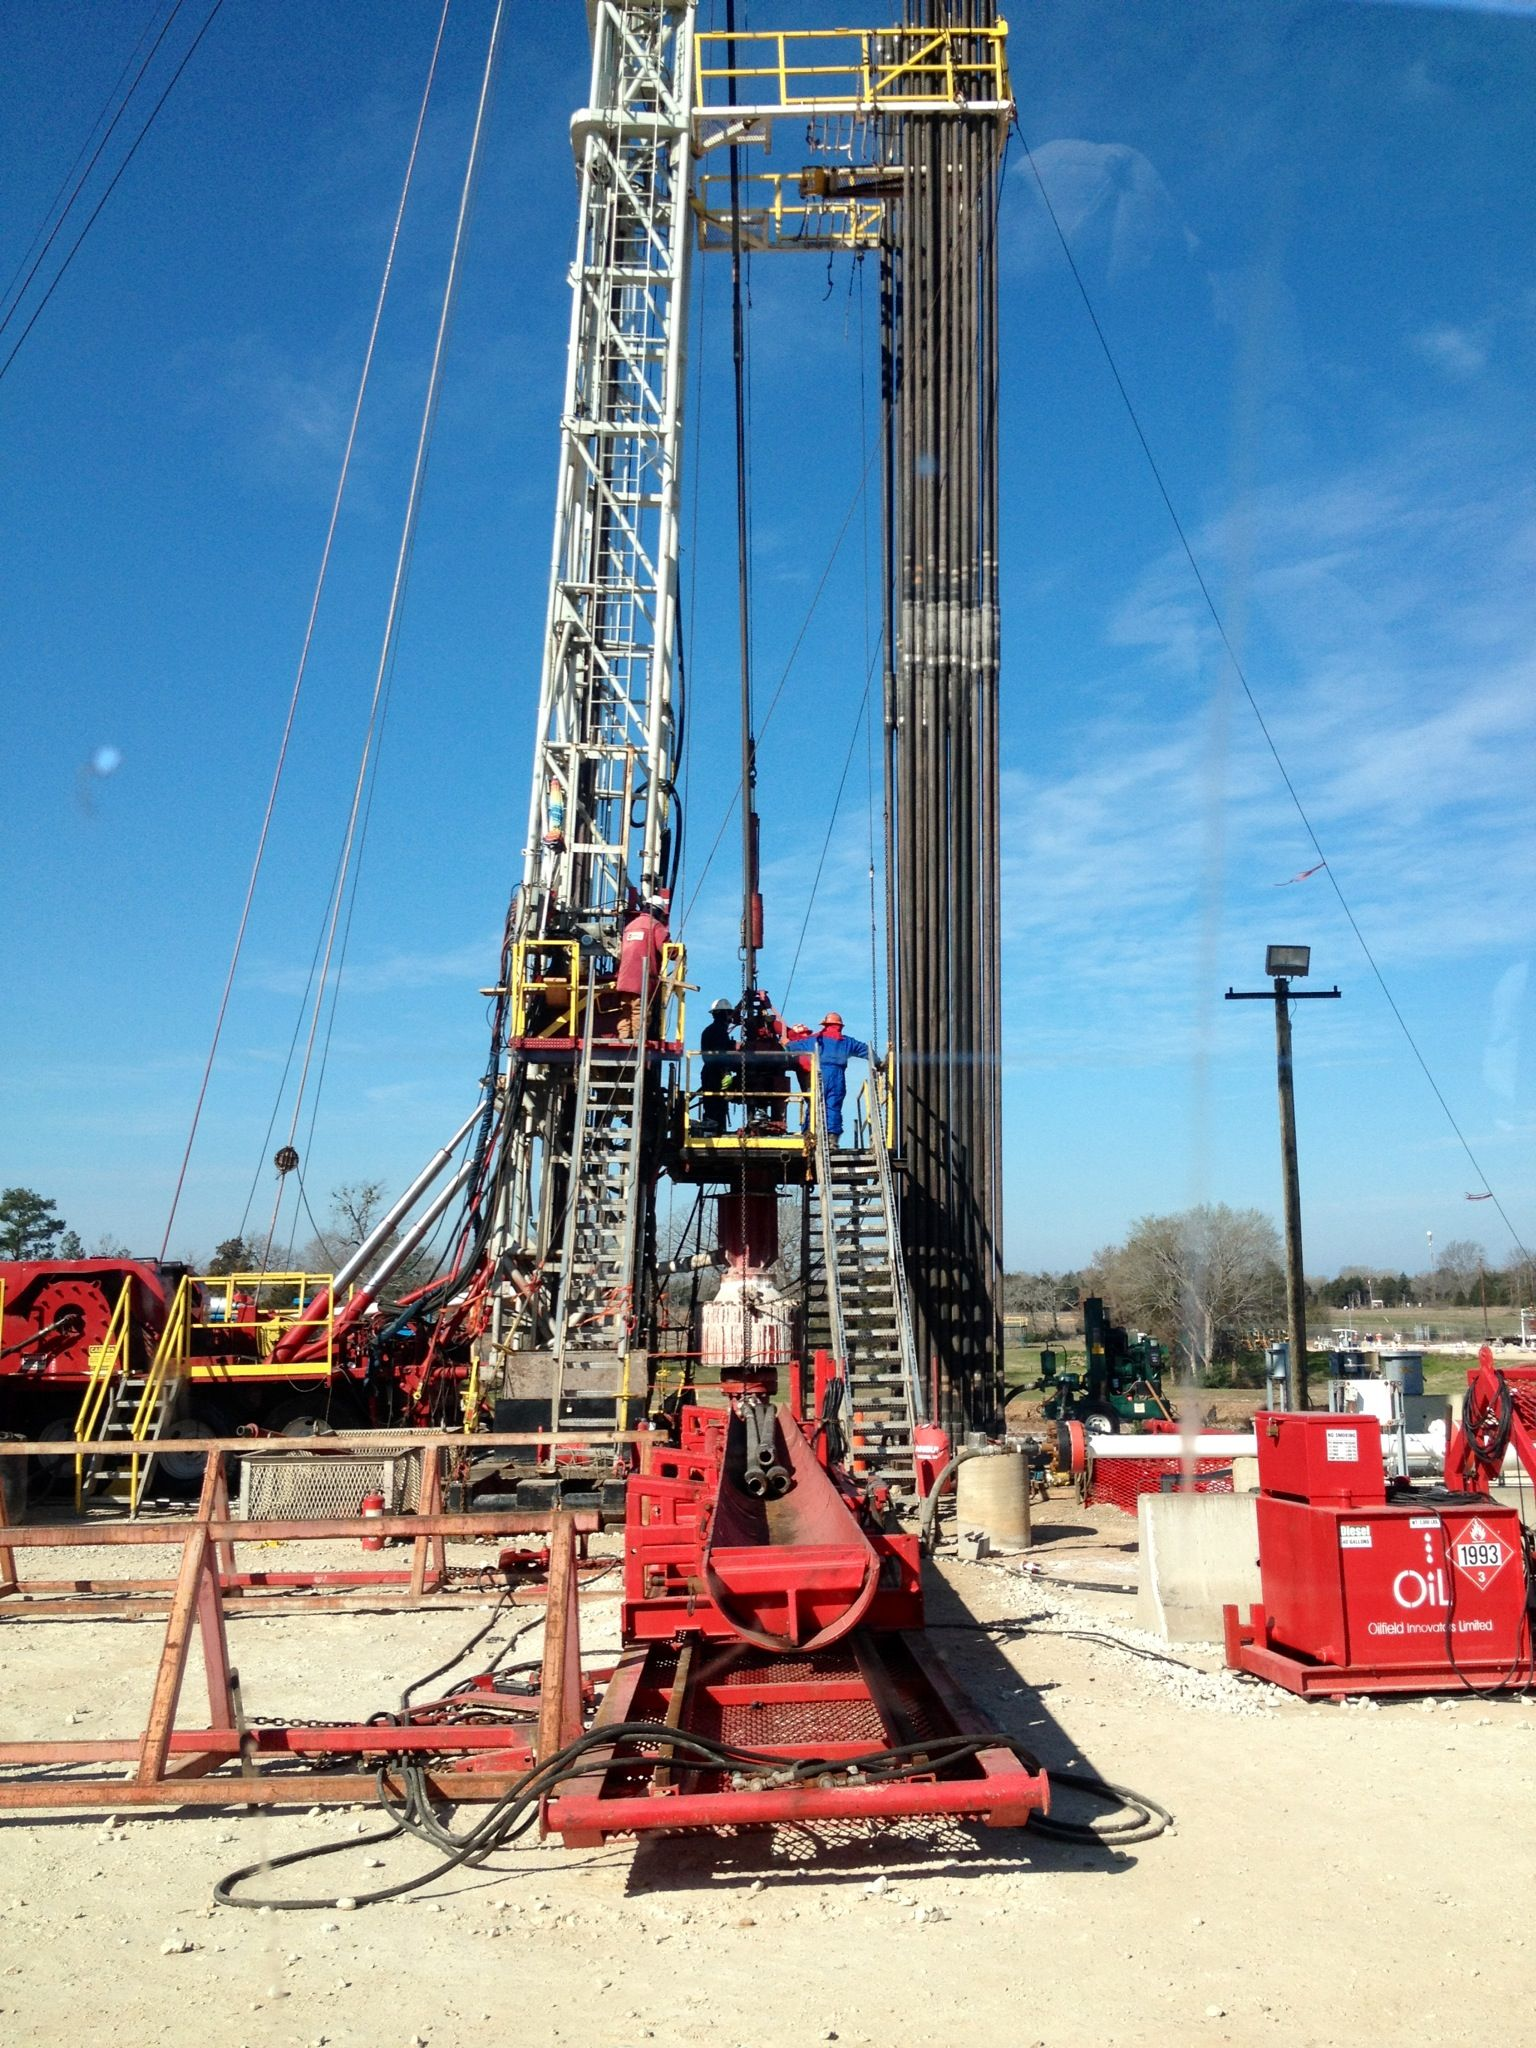 Nabors Workover Rig Oilfield Life Oil Rig Jobs Drilling Rig